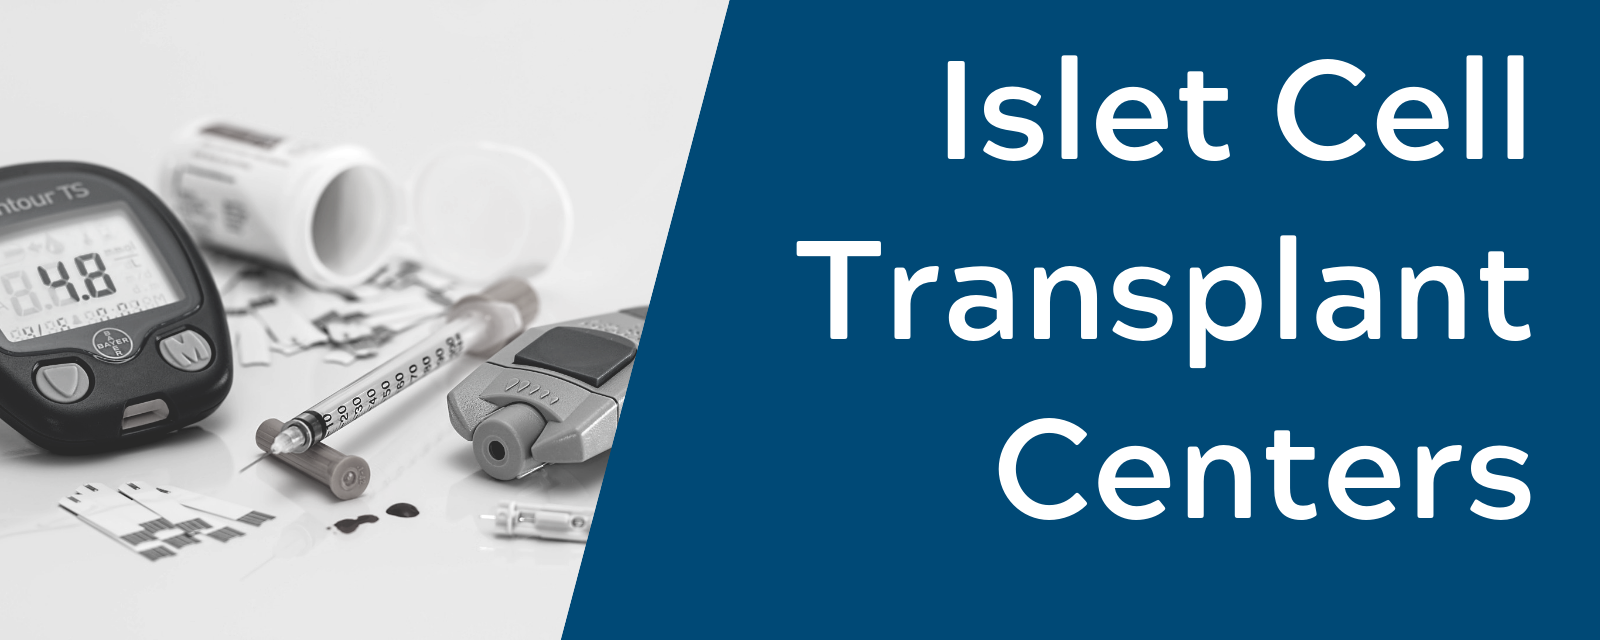 Islet Cell Research & Transplant Centers in the US